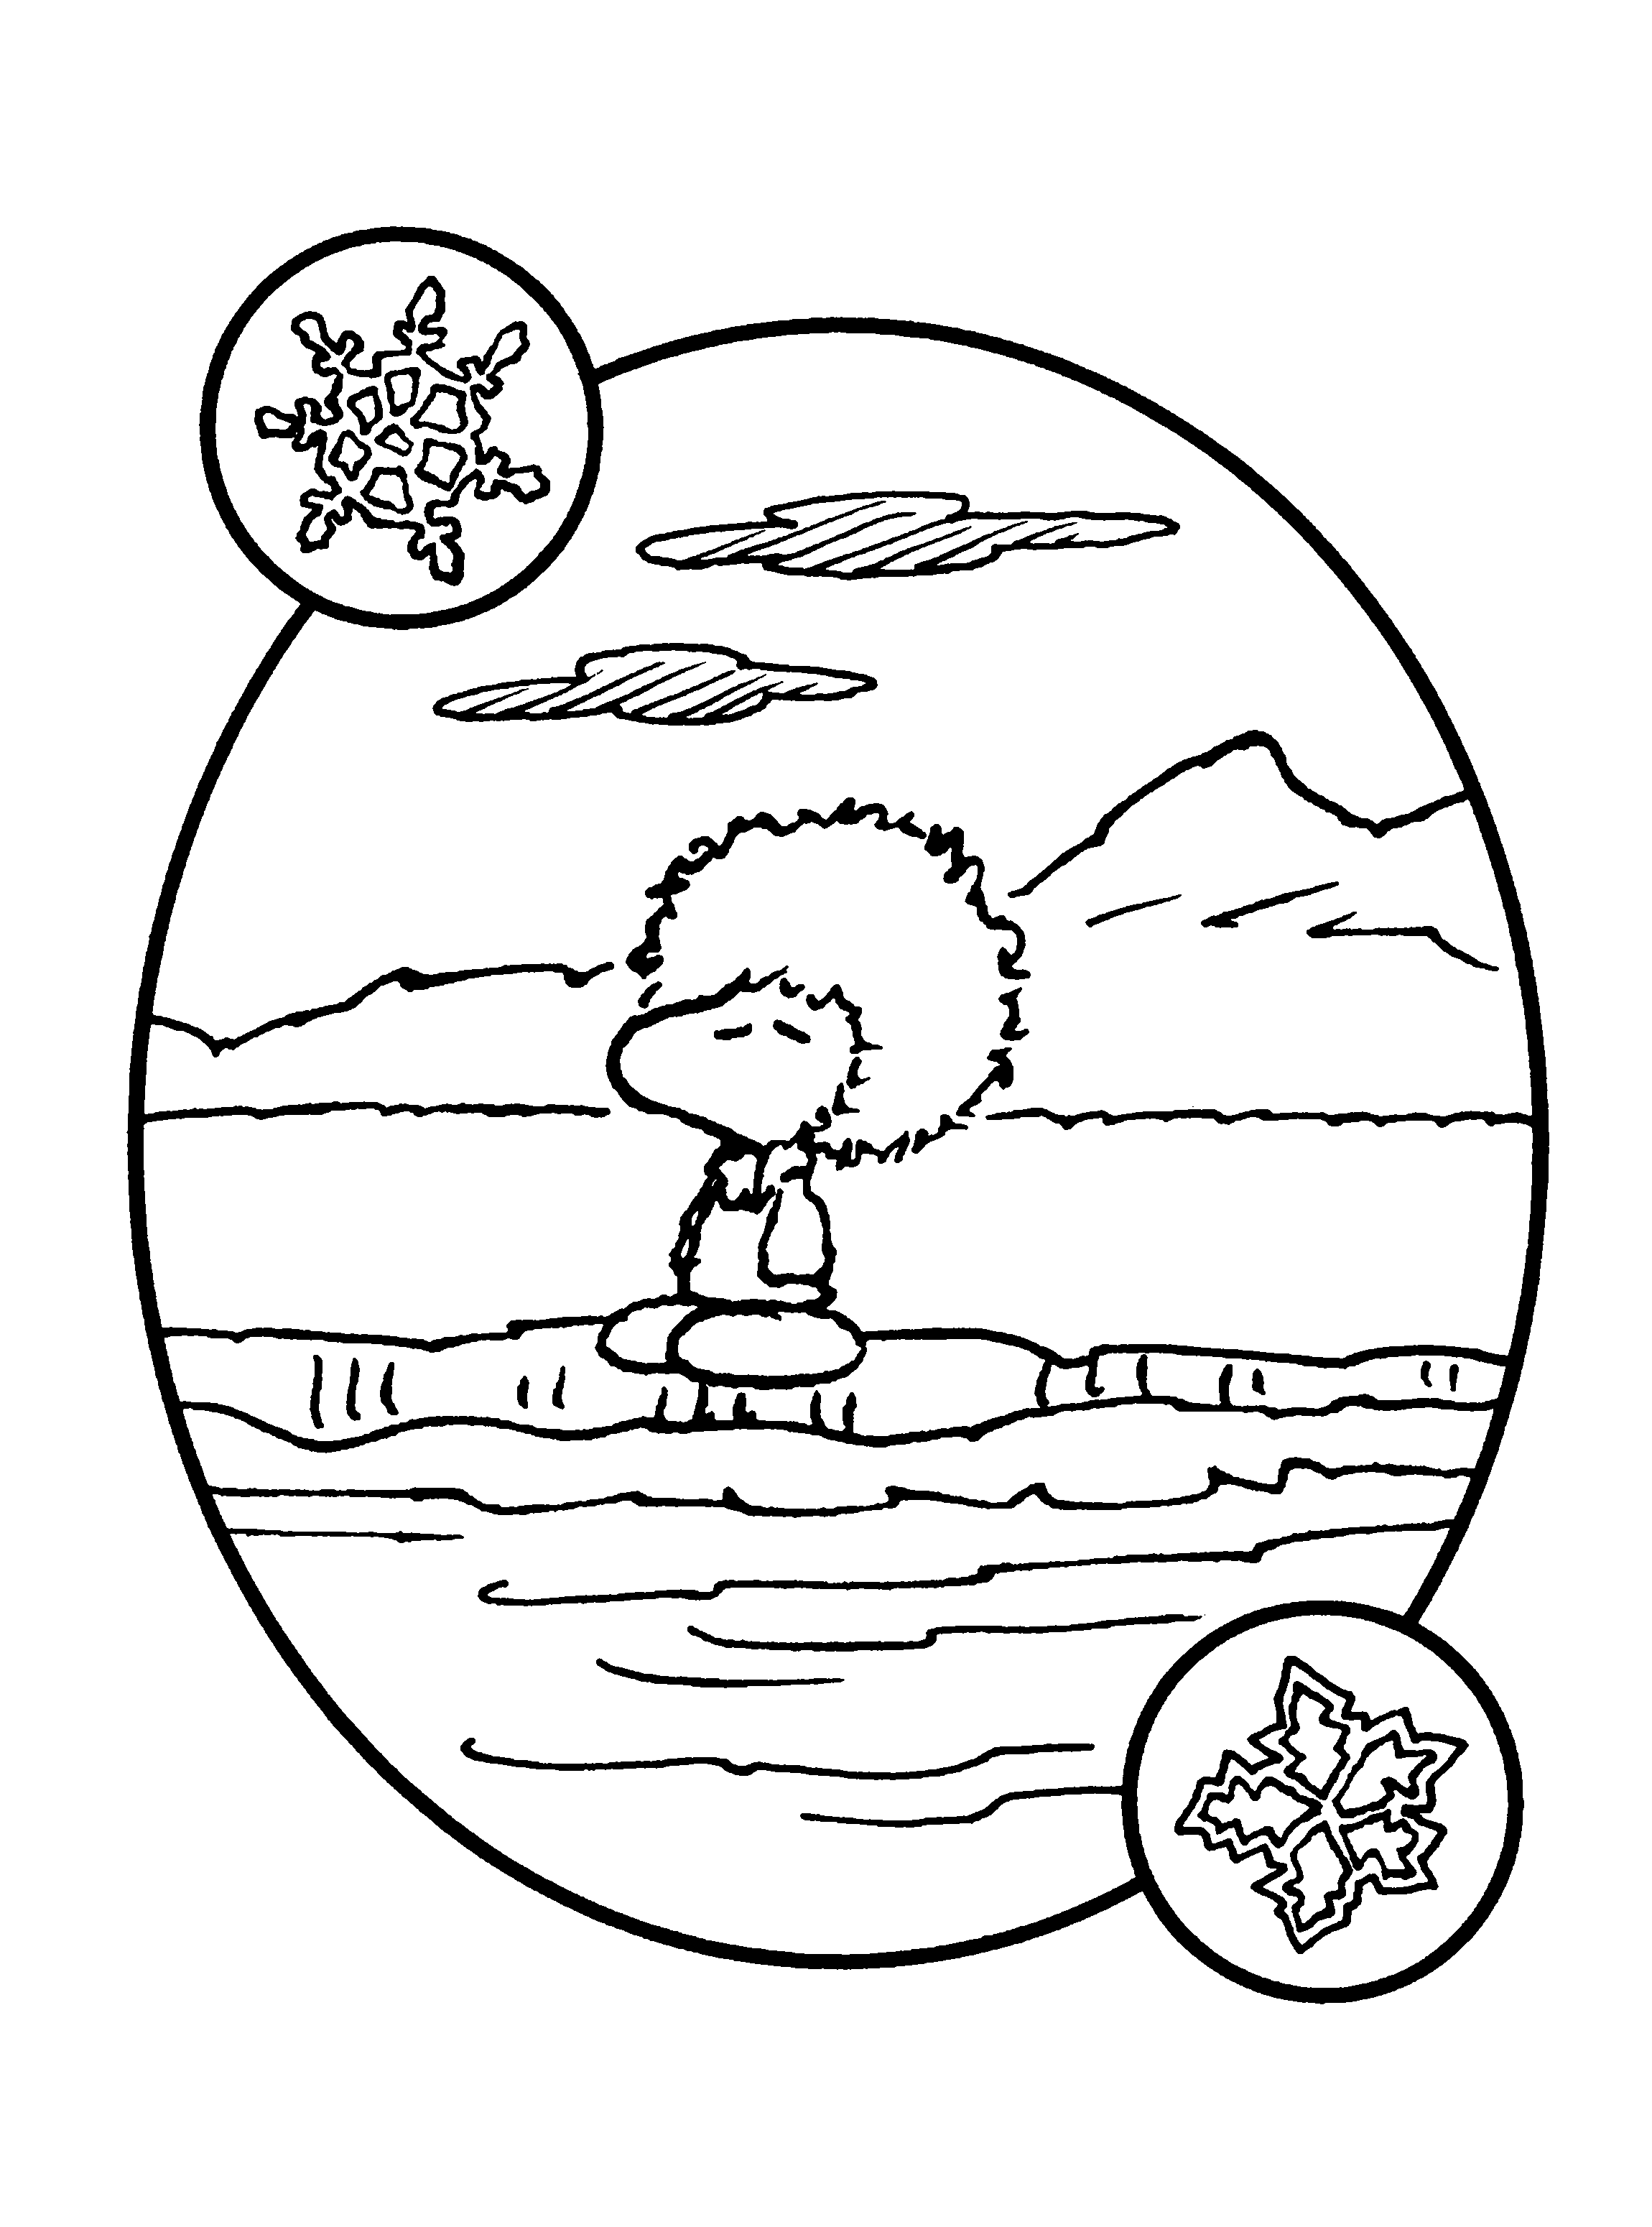 Peanuts Xmas Coloring and Activity Book | Snoopy & Woodstock | Pinterest